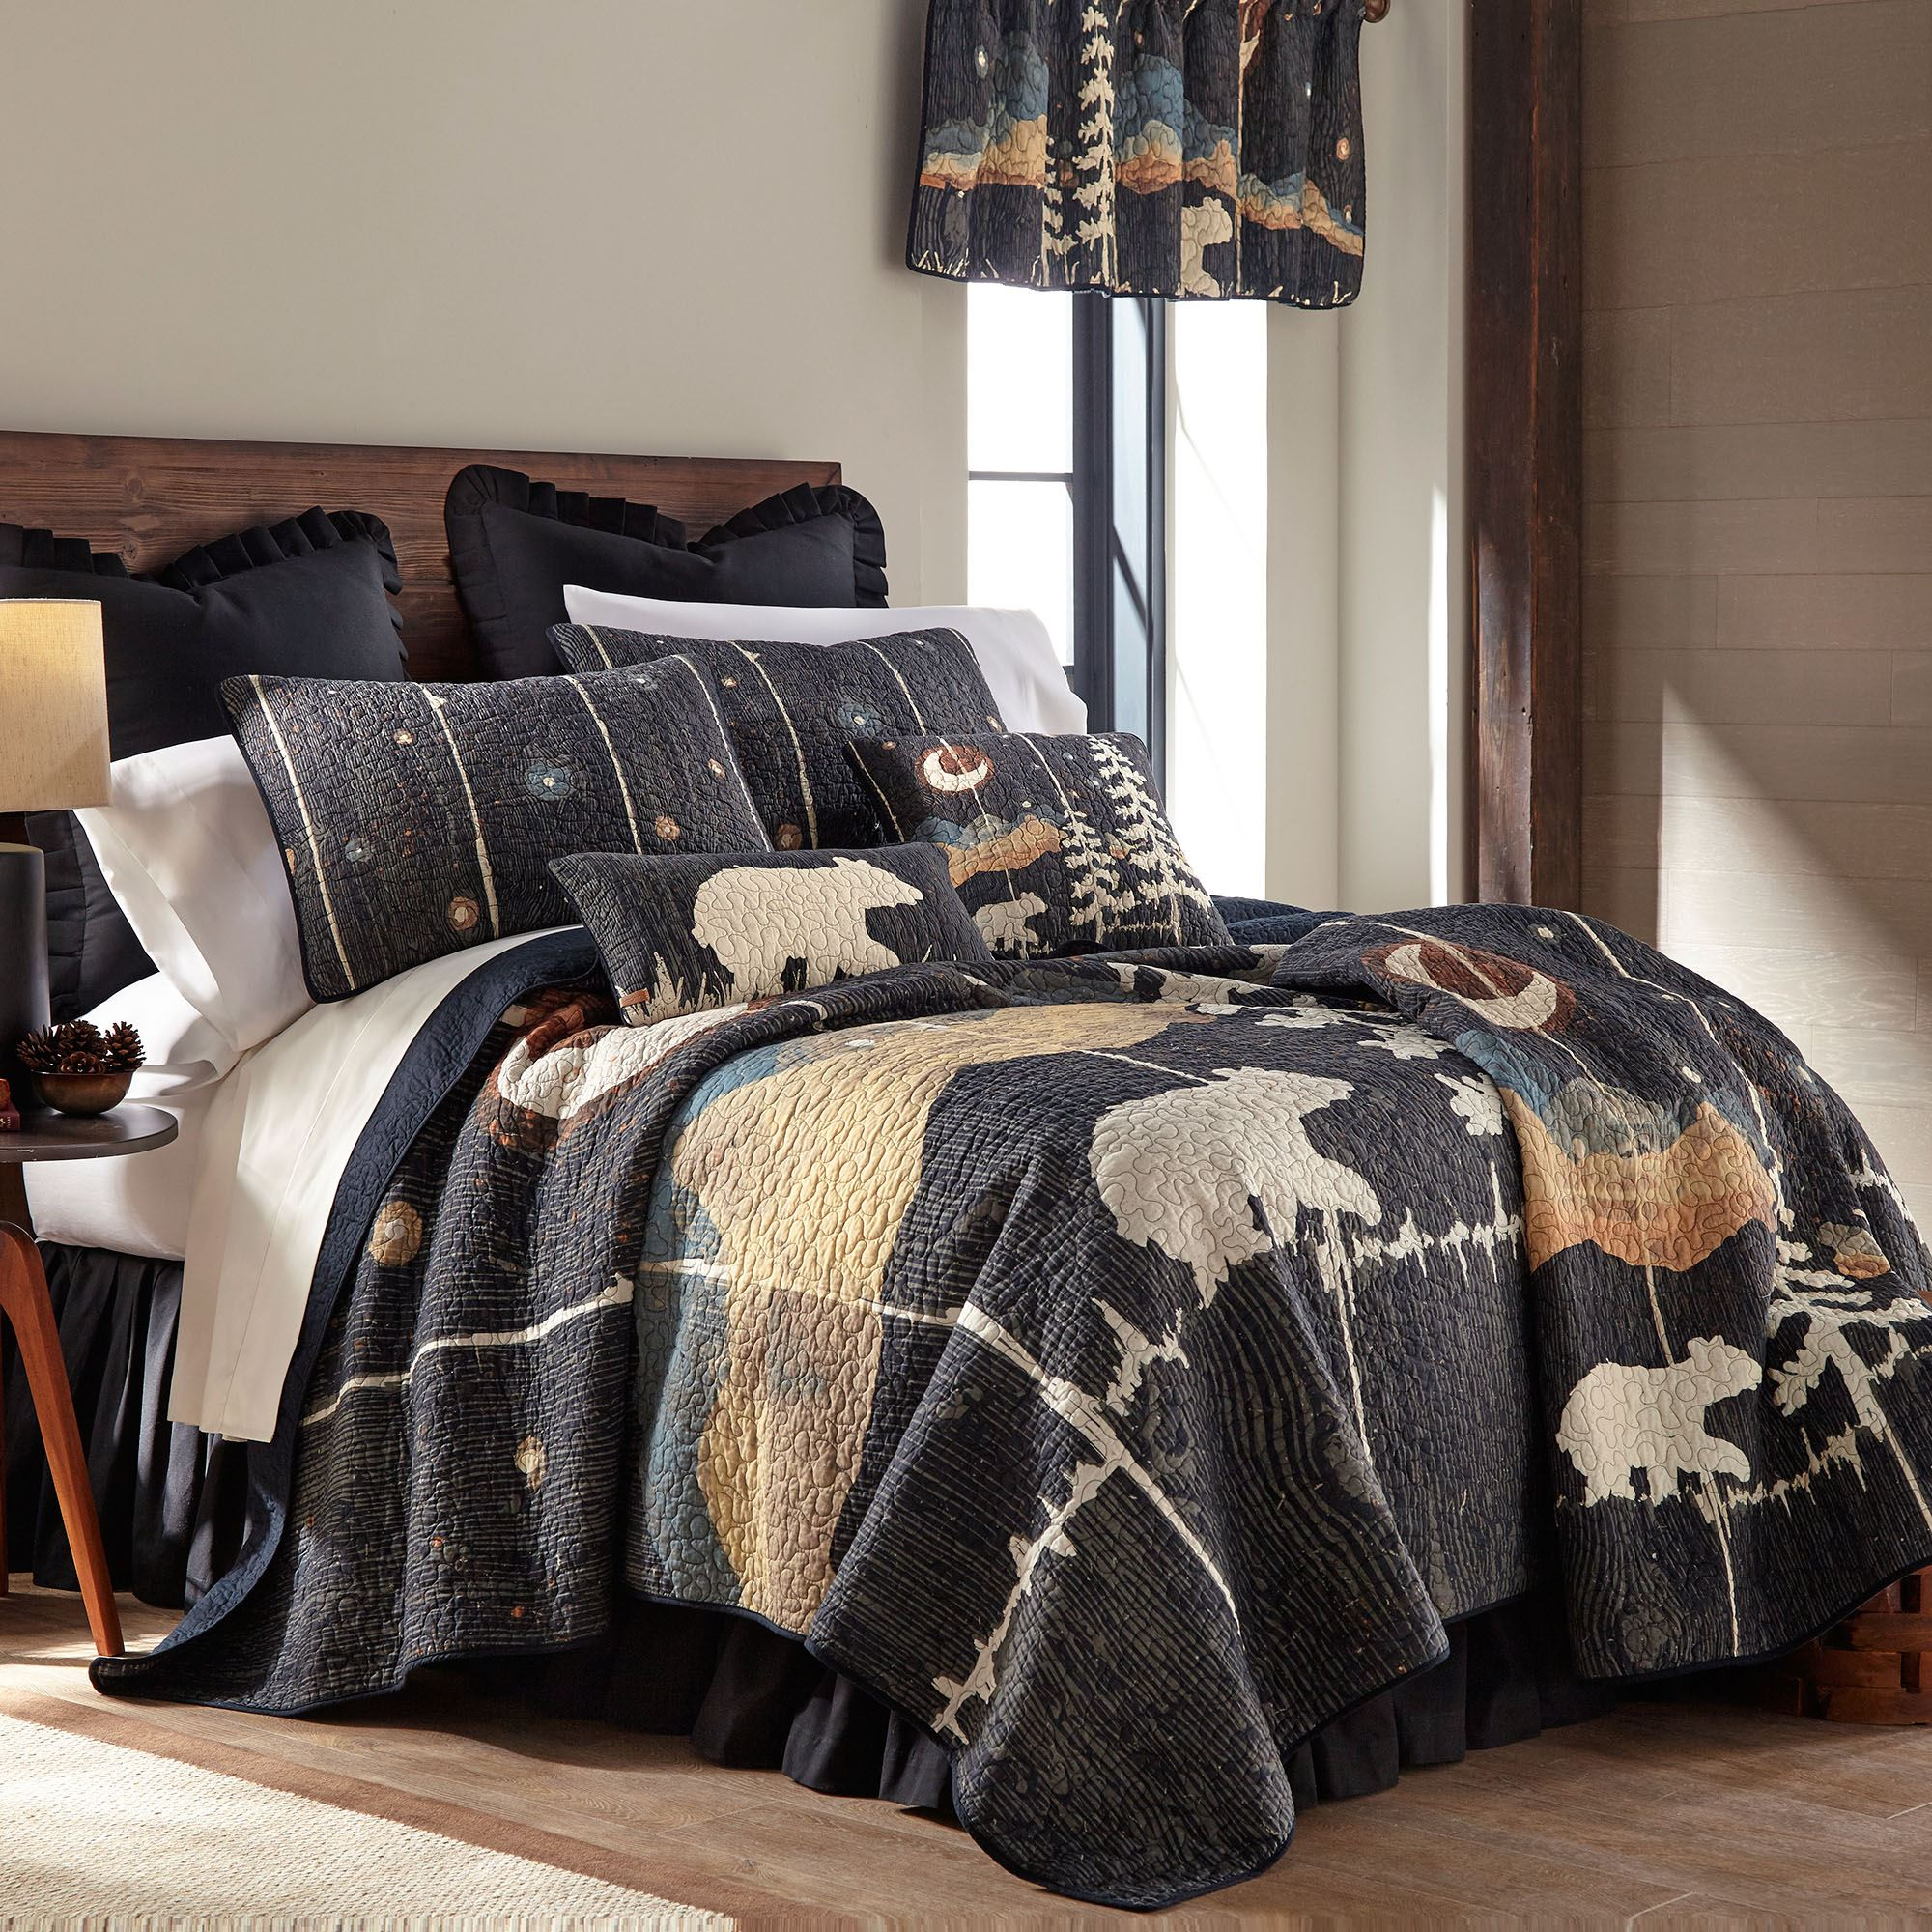 Moonlit Bear Rustic Quilt Bedding By Donna Sharp